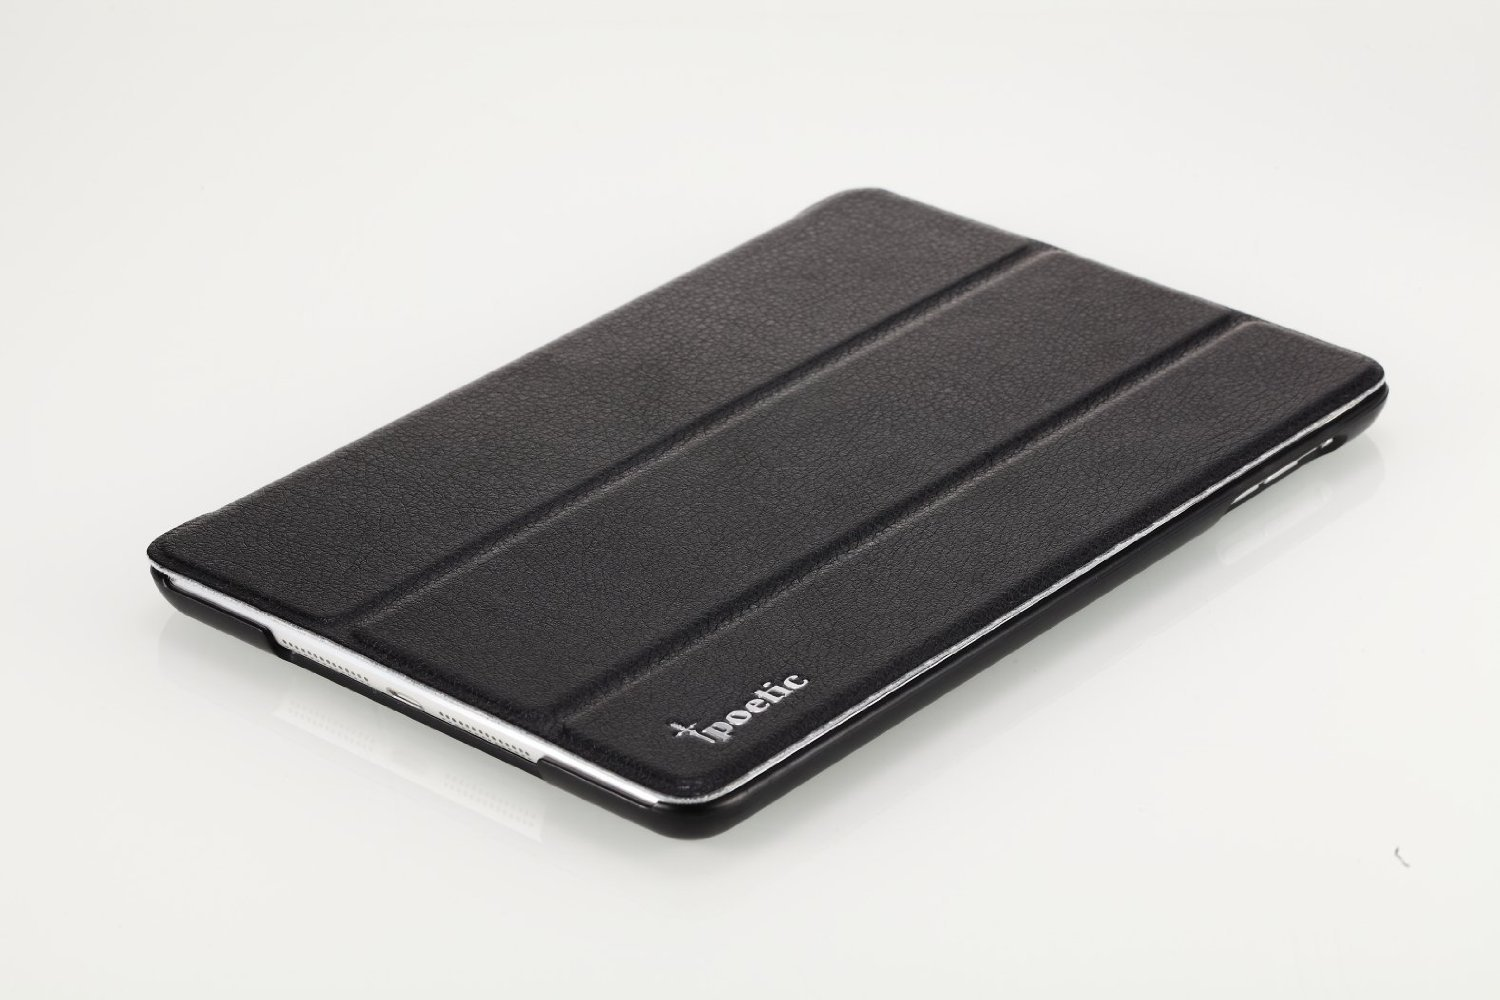 Poetic SLIMLINE Portfolio - iPad Mini Case $14.95